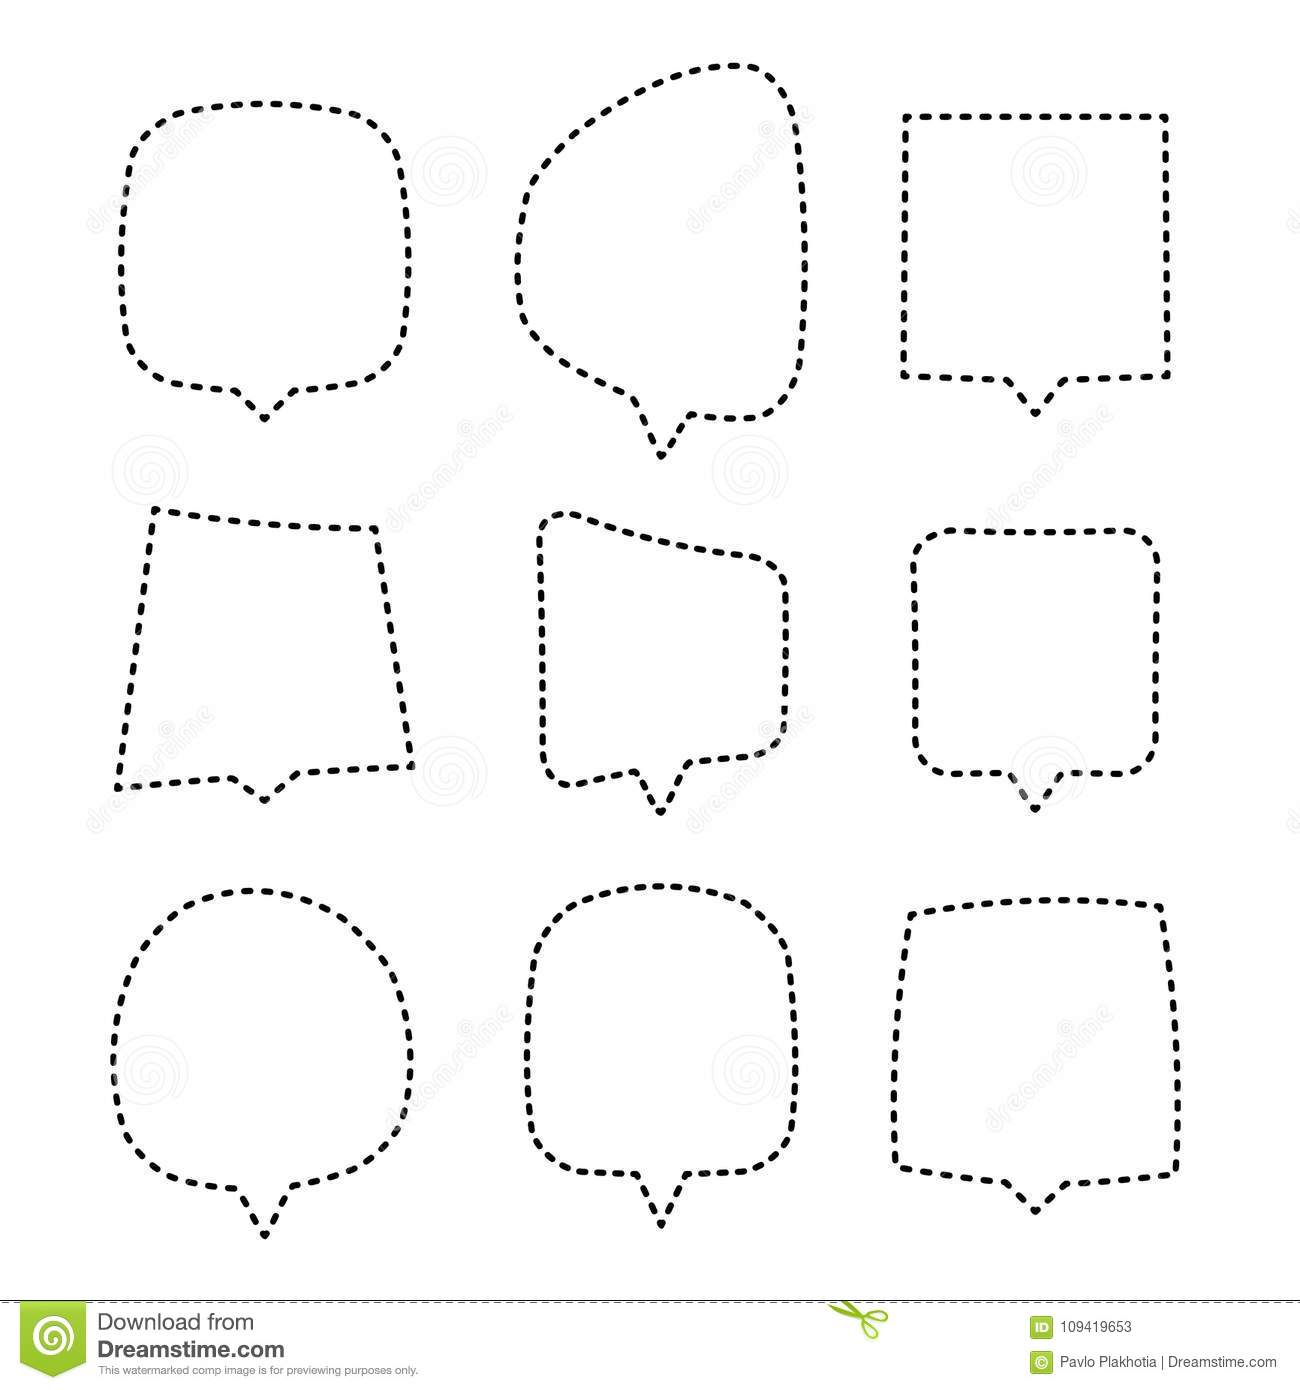 Speech Or Thought Bubbles Of Different Shapes And Sizes